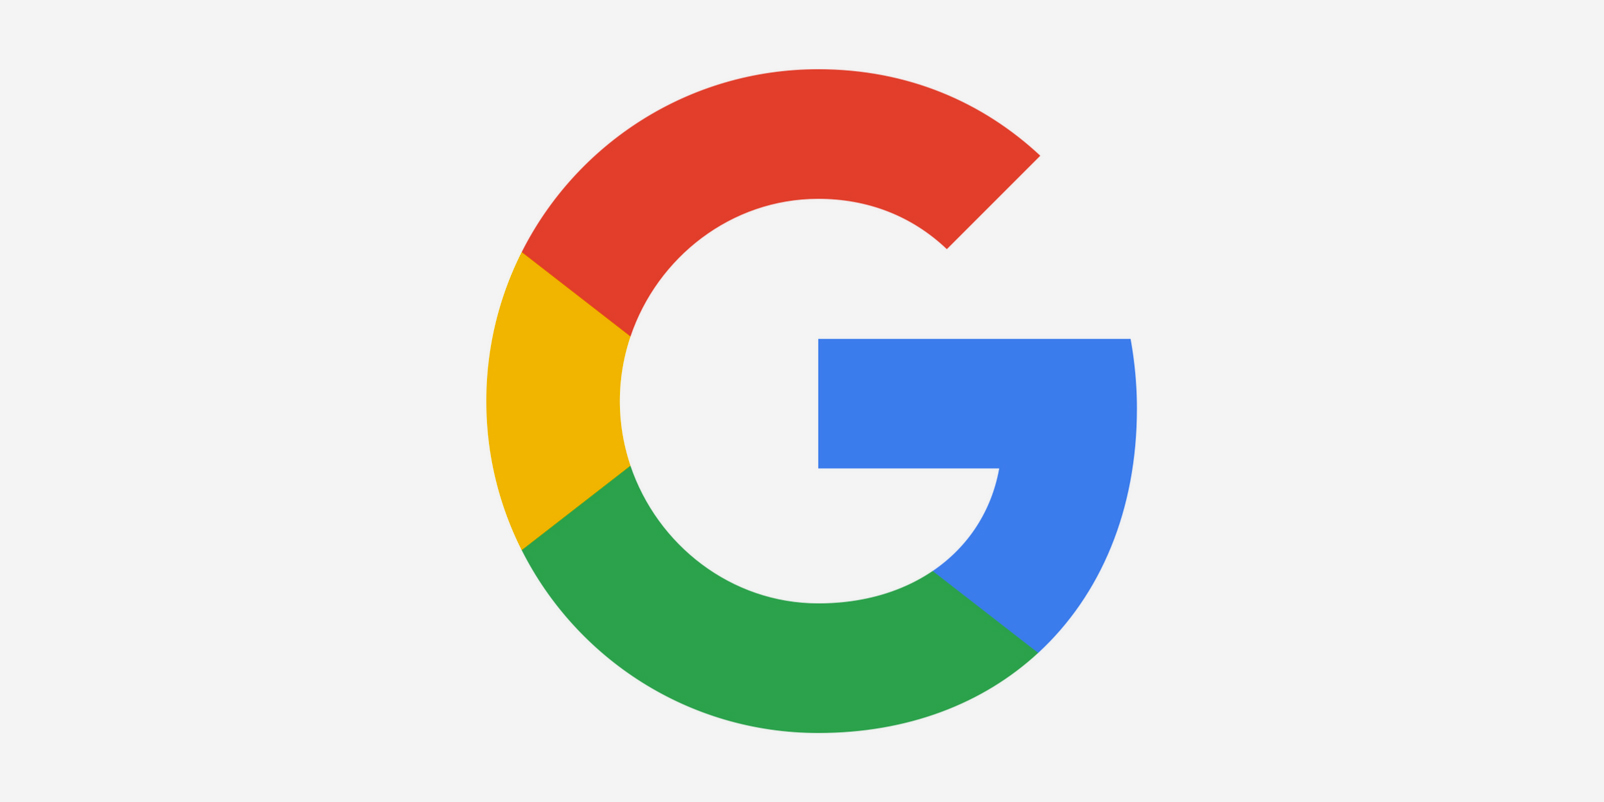 All of Google's jokes for April Fools' Day 2016